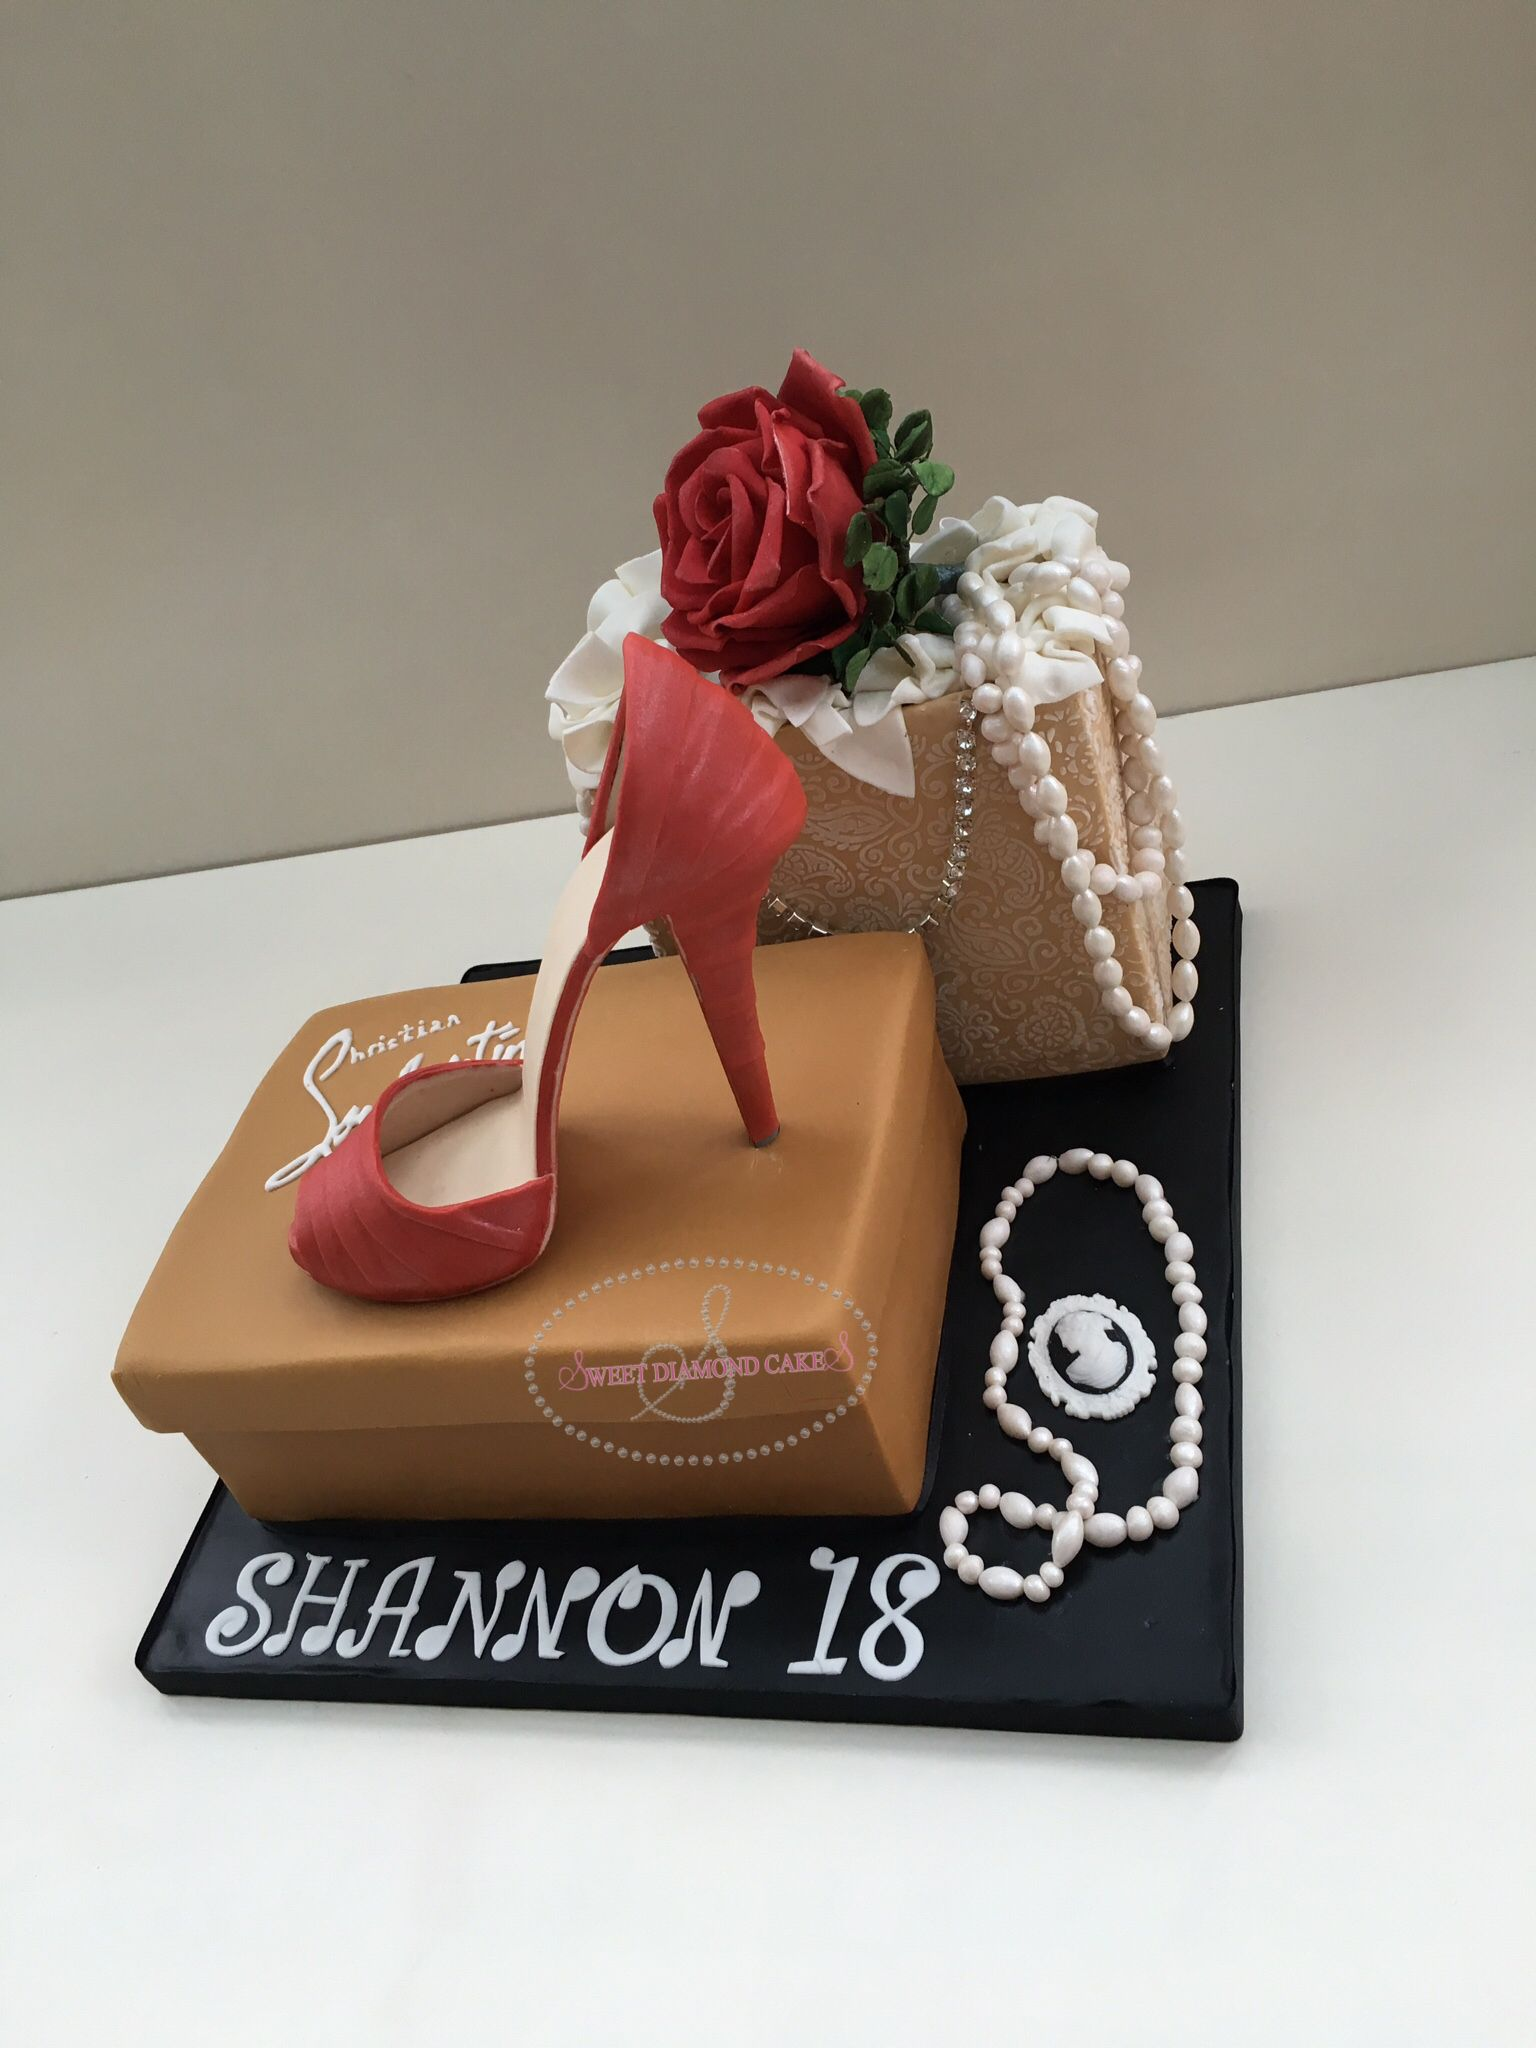 Simply Elegant And Chic Louboutin Shoe Box And Shopping Bag Cake For